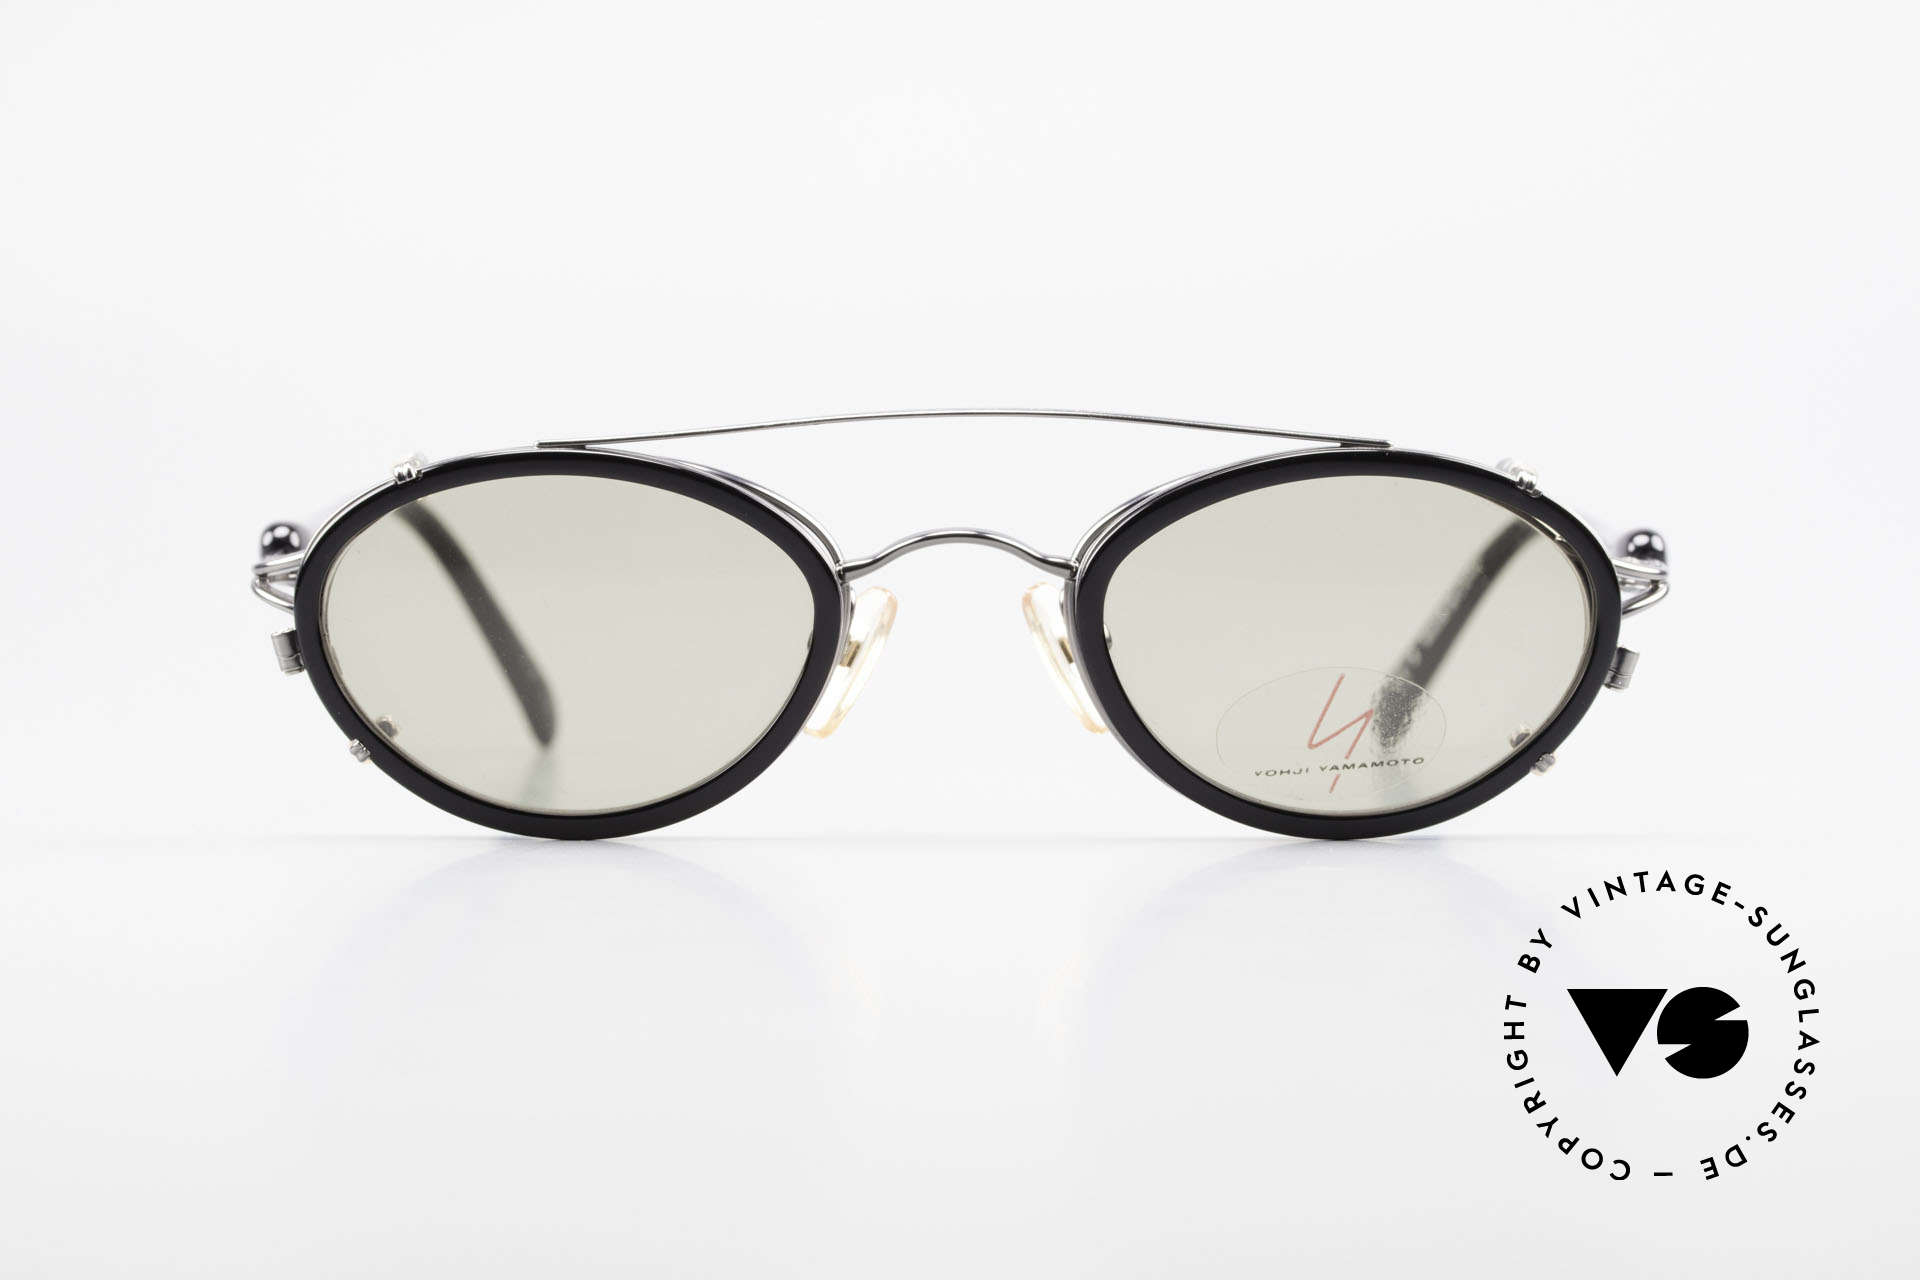 Yohji Yamamoto 51-7210 No Retro Shades Clip-On 90's, designer eyeglasses with practical sun clip; 100% UV, Made for Men and Women